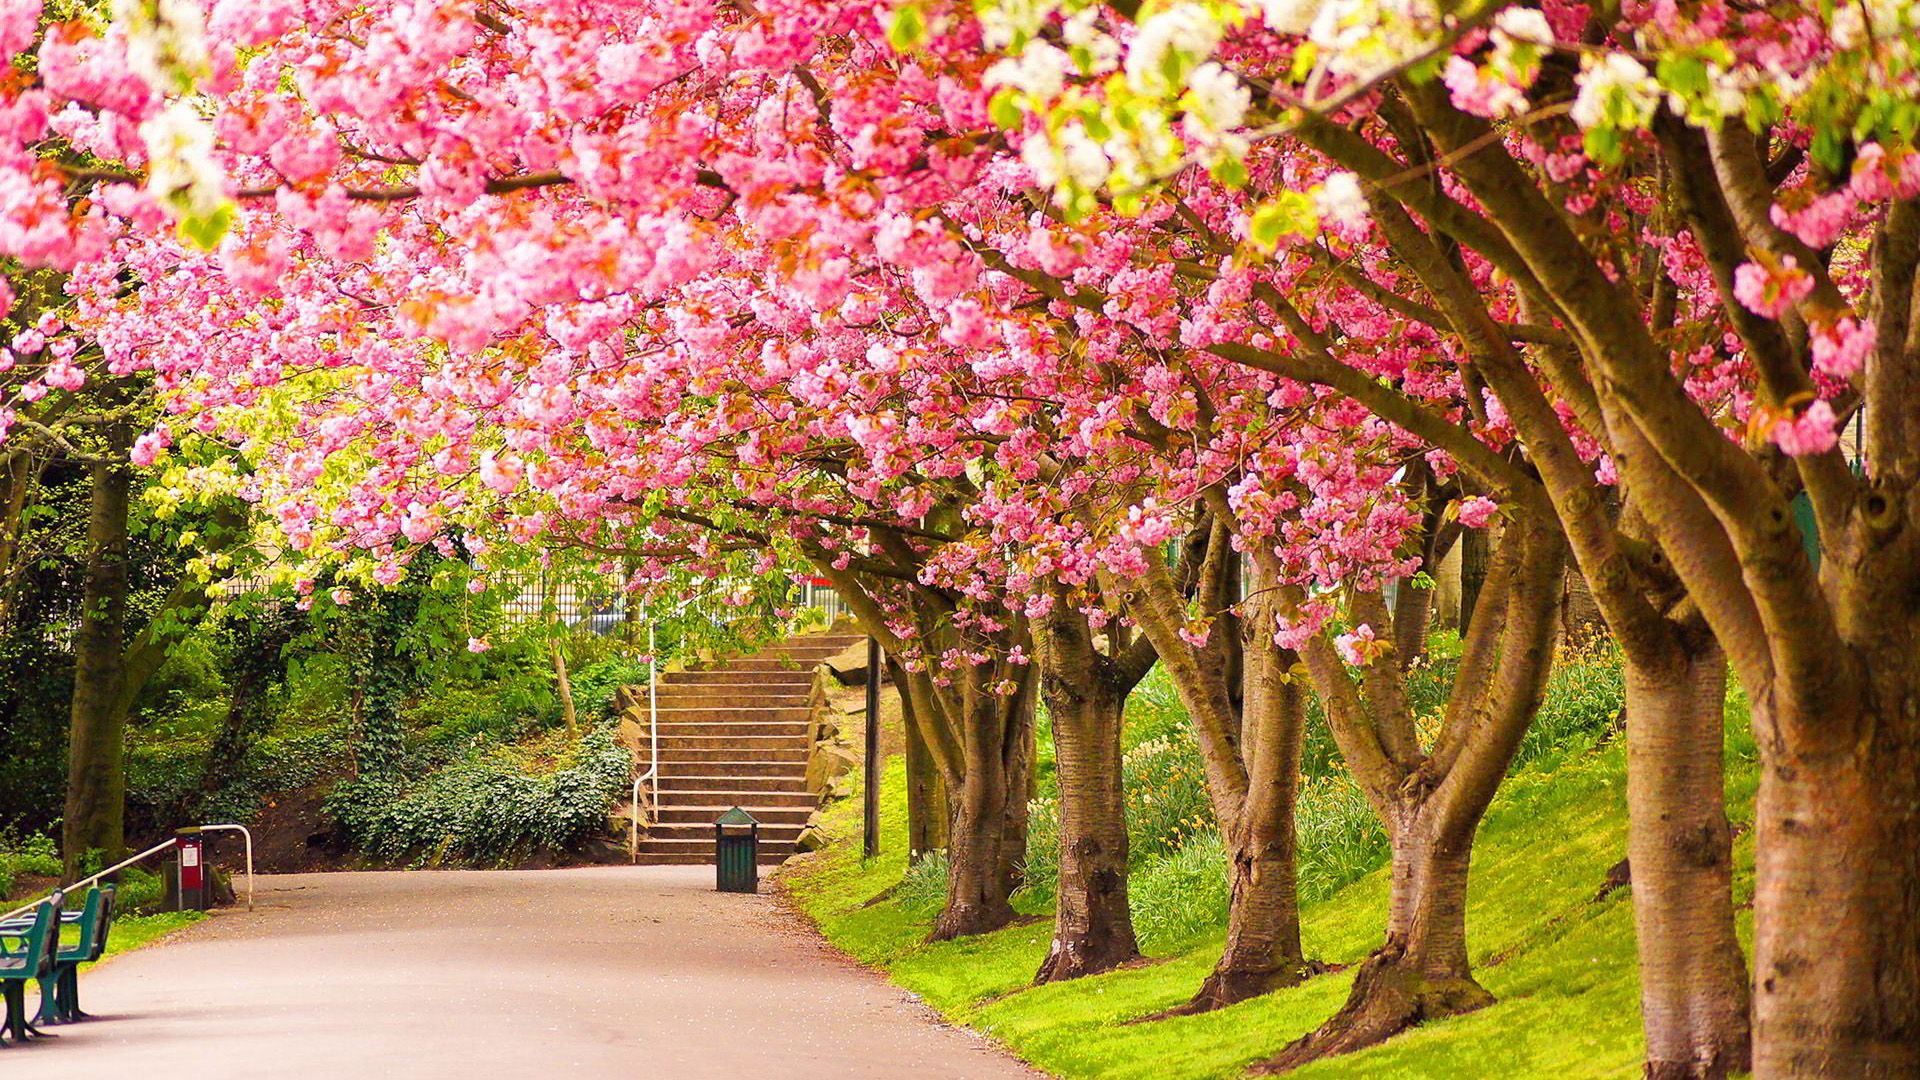 10 Hd Nature Wallpapers With 1920 1080 Pixels 2 Pink Blossoms Nature Desktop Wallpaper Nature Desktop Beautiful Nature Wallpaper